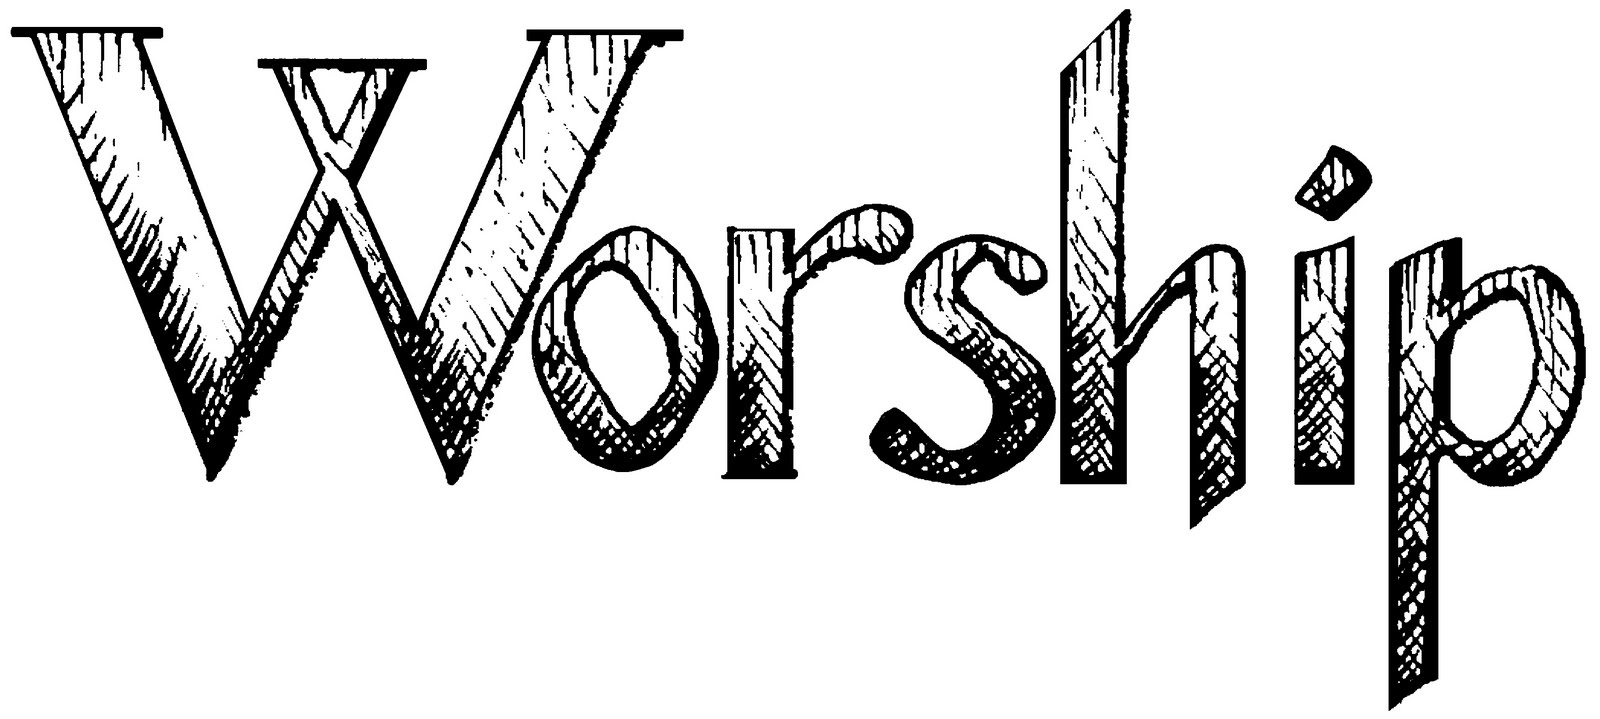 Free worship clipart png free download Free Worship Cliparts, Download Free Clip Art, Free Clip Art on ... png free download